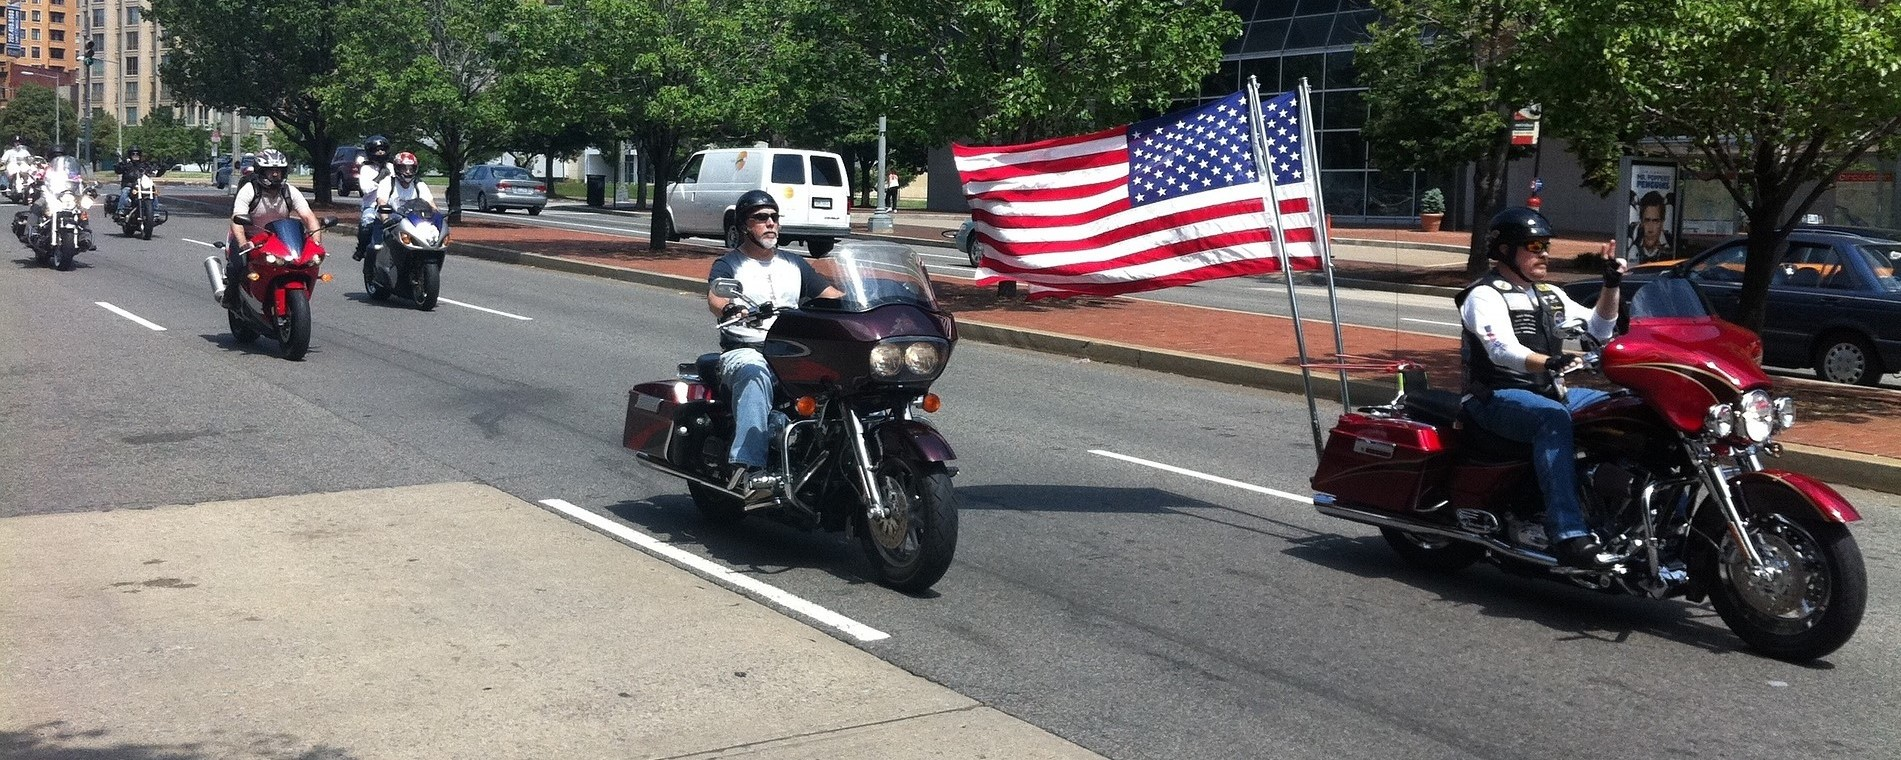 Motorcycle Rally. American Flag in the background. Memorial Day Celebration